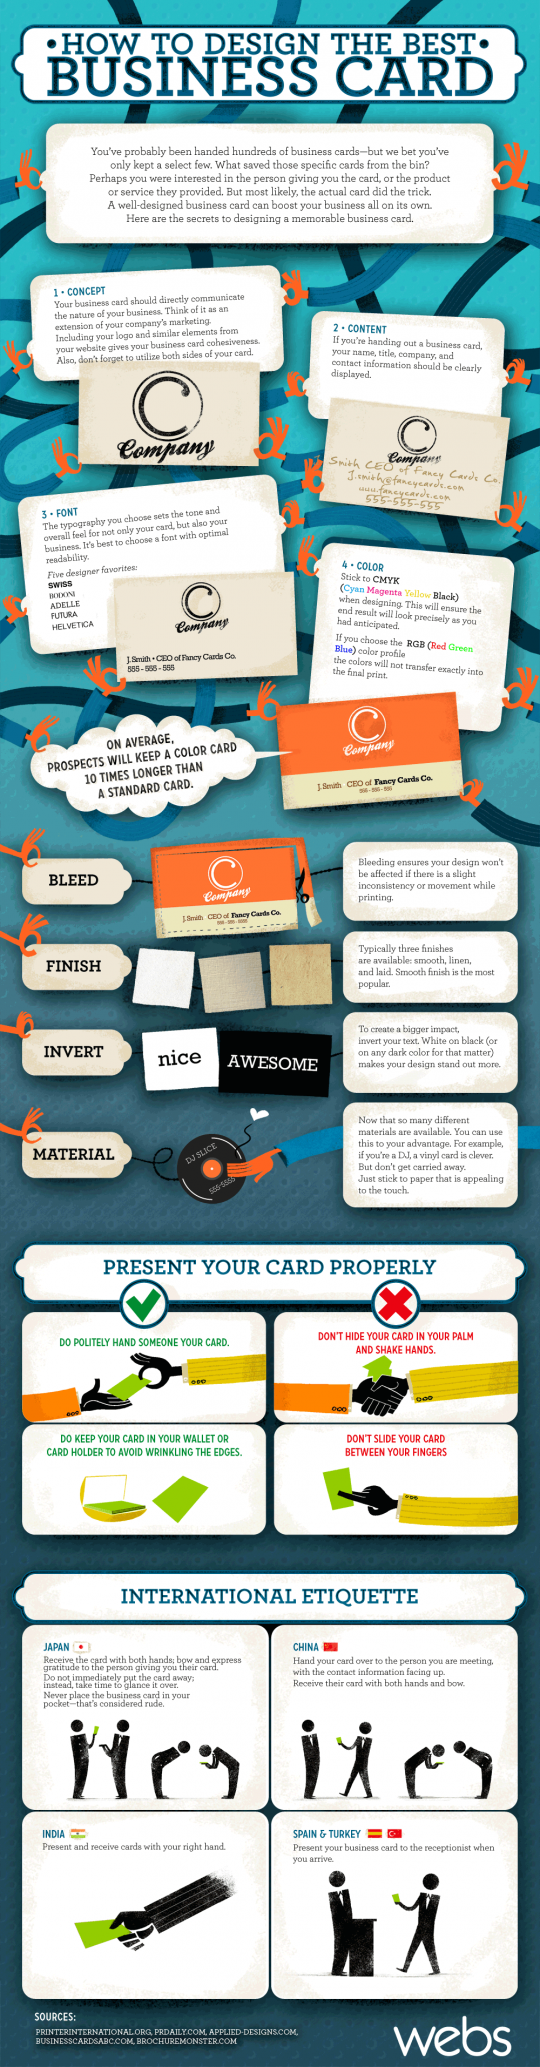 How to Design the Best Business Card